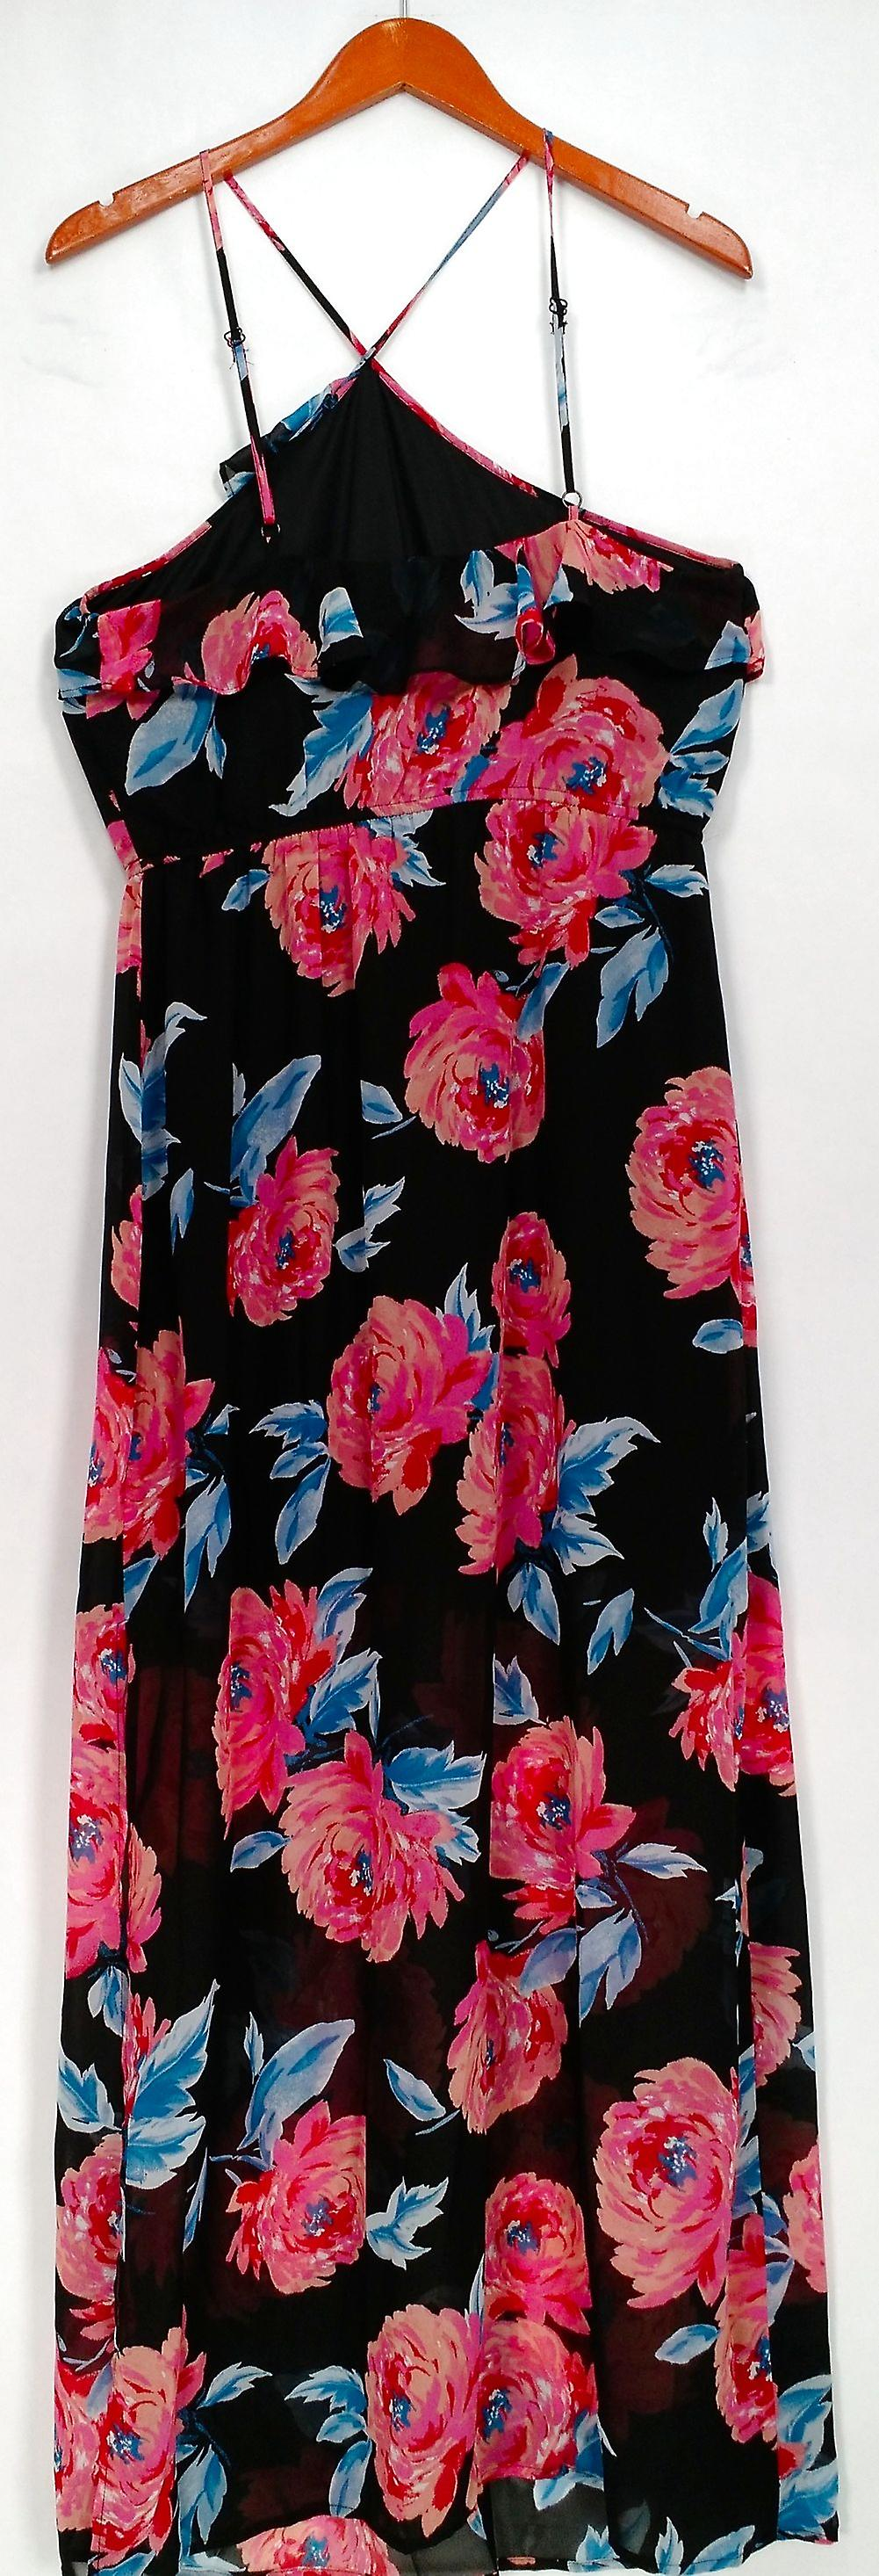 Want & Need Dress Floral Printed Ruffled Maxi w/ Deep Side Slits Black